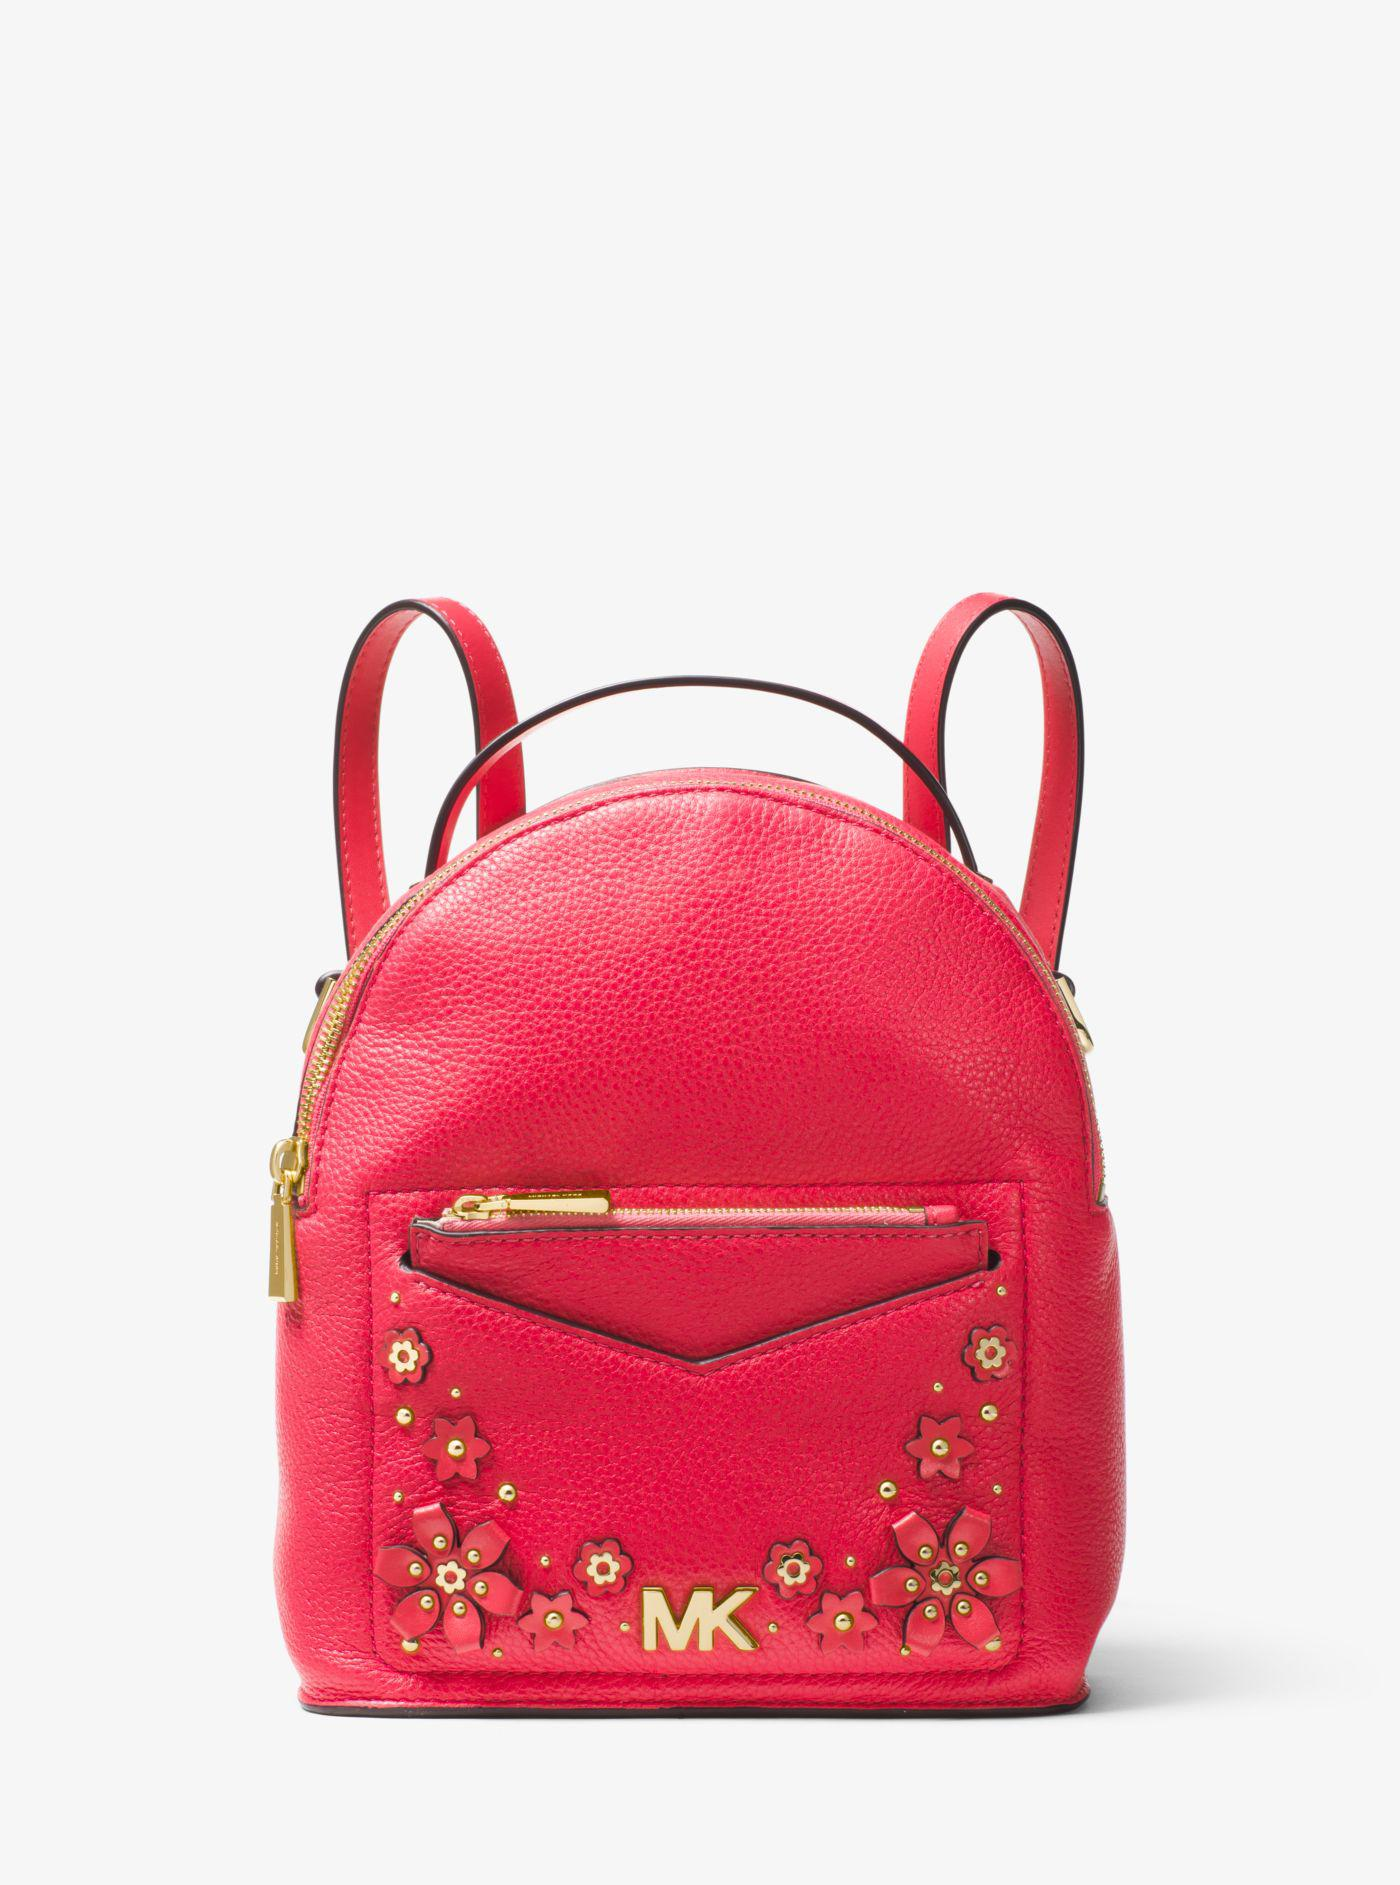 Lyst - Michael Kors Jessa Small Floral Embellished Pebbled Leather ... 3442a6a7a6b06